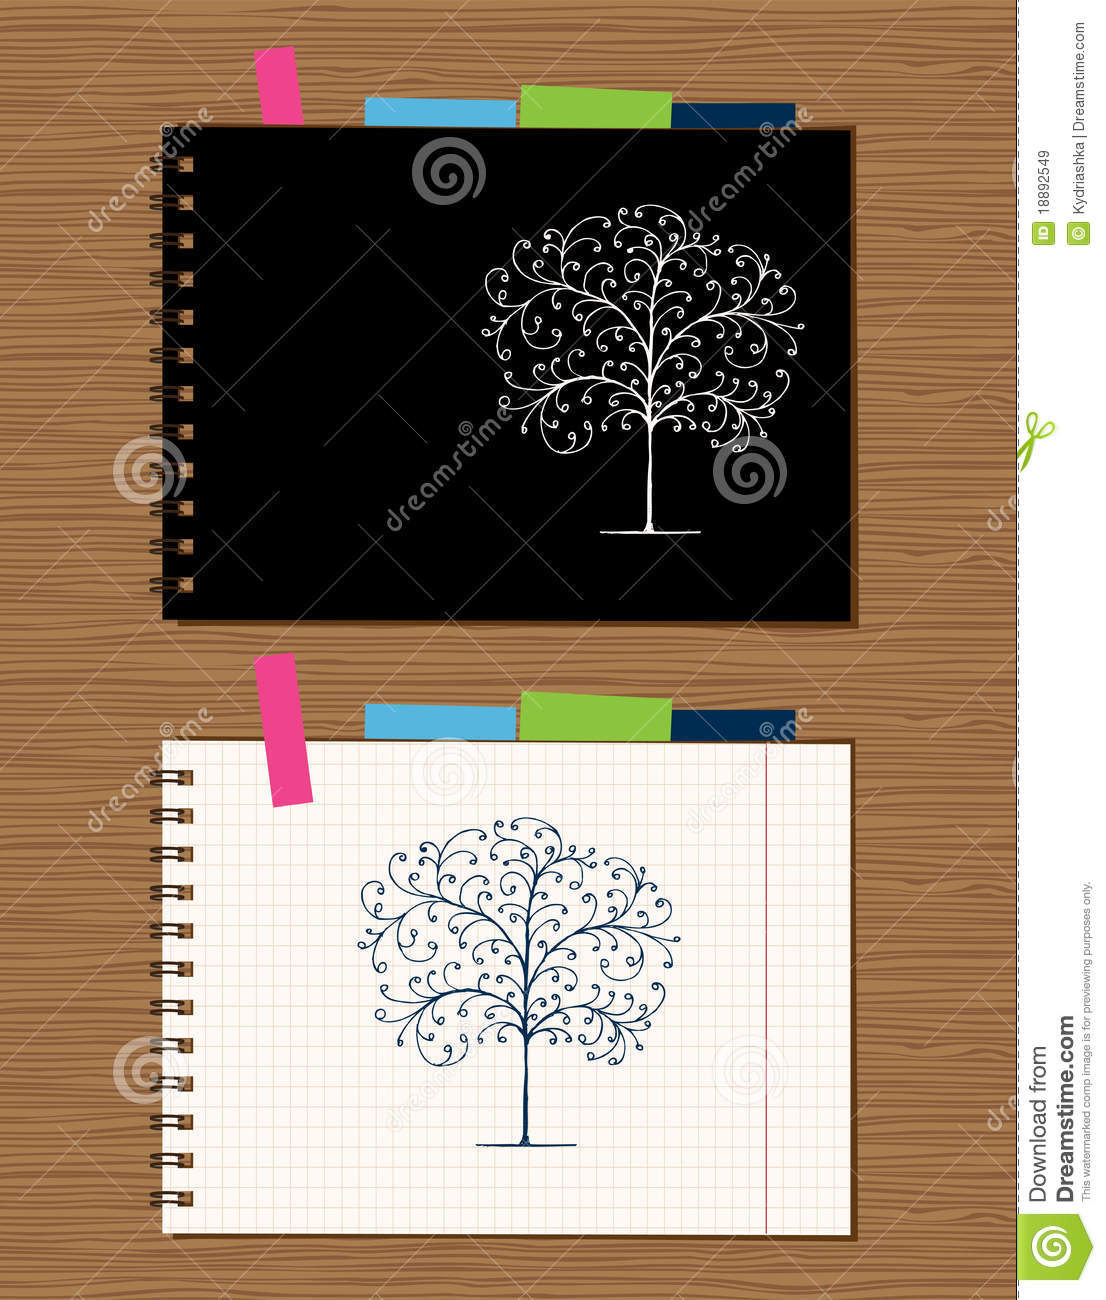 Notebook Cover Background : Notebook cover and page design royalty free stock images